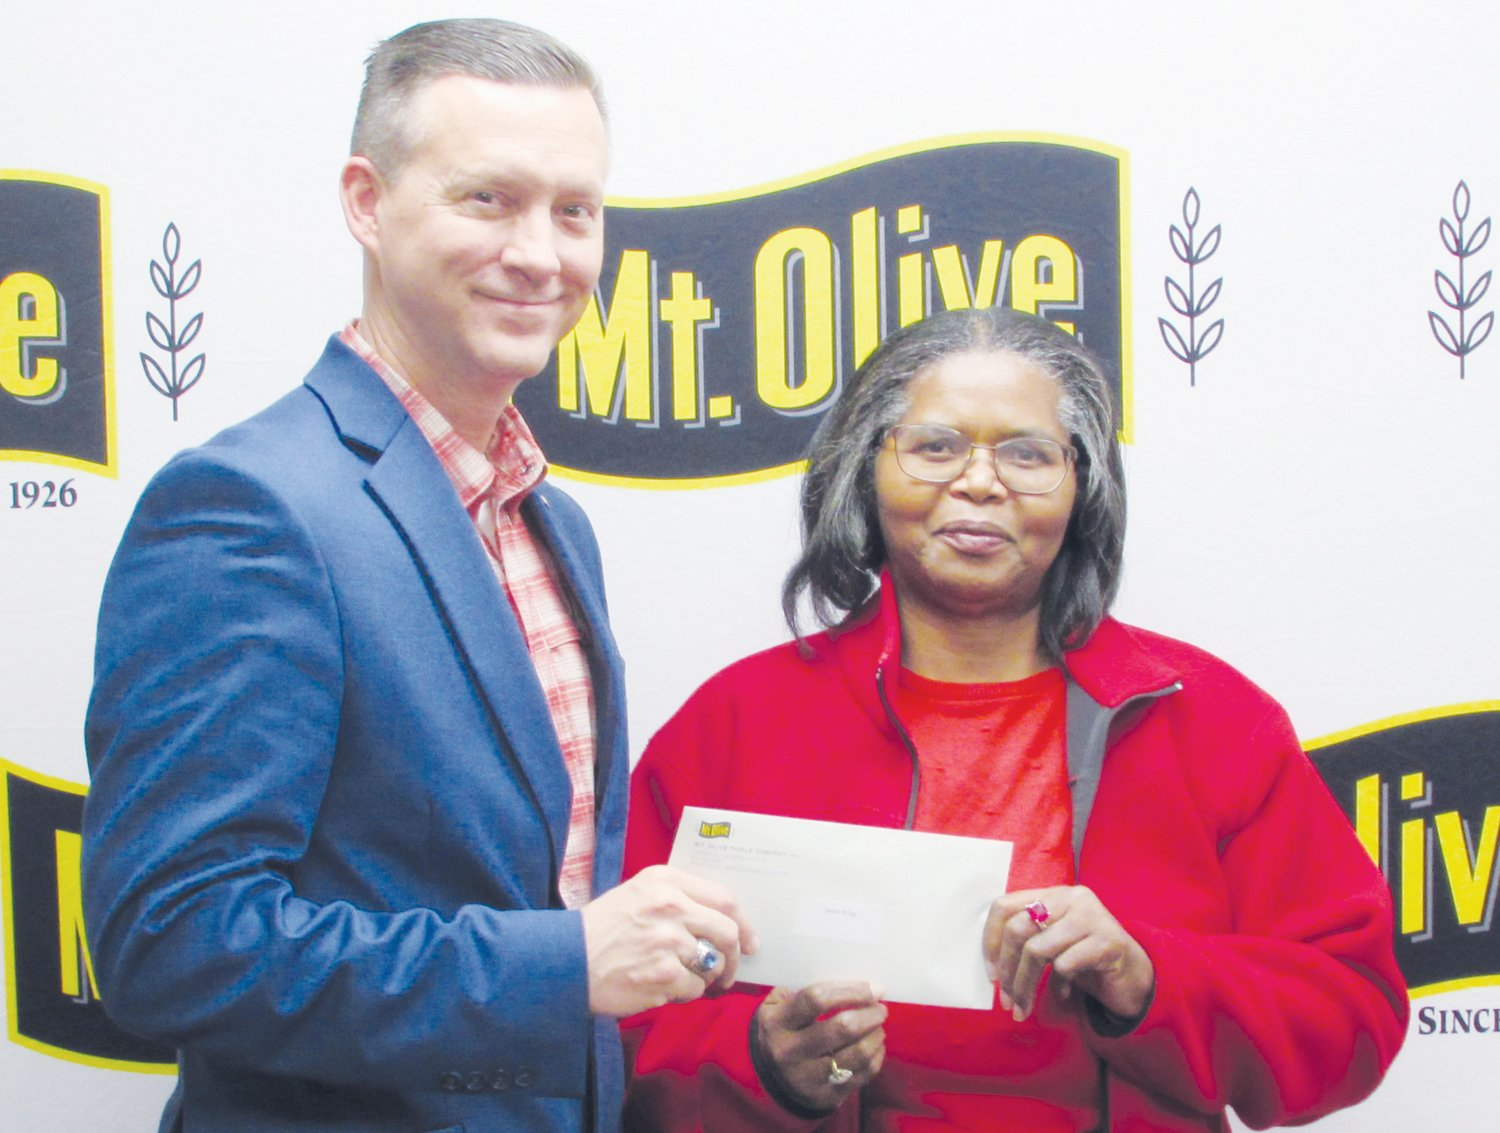 Mt. Olive Pickle Company's Employees Community Fund Chairman Patrick Muston, left, presents a check for $1,955 to Mavis Smith, chair of Sarah's Refuge in Warsaw.